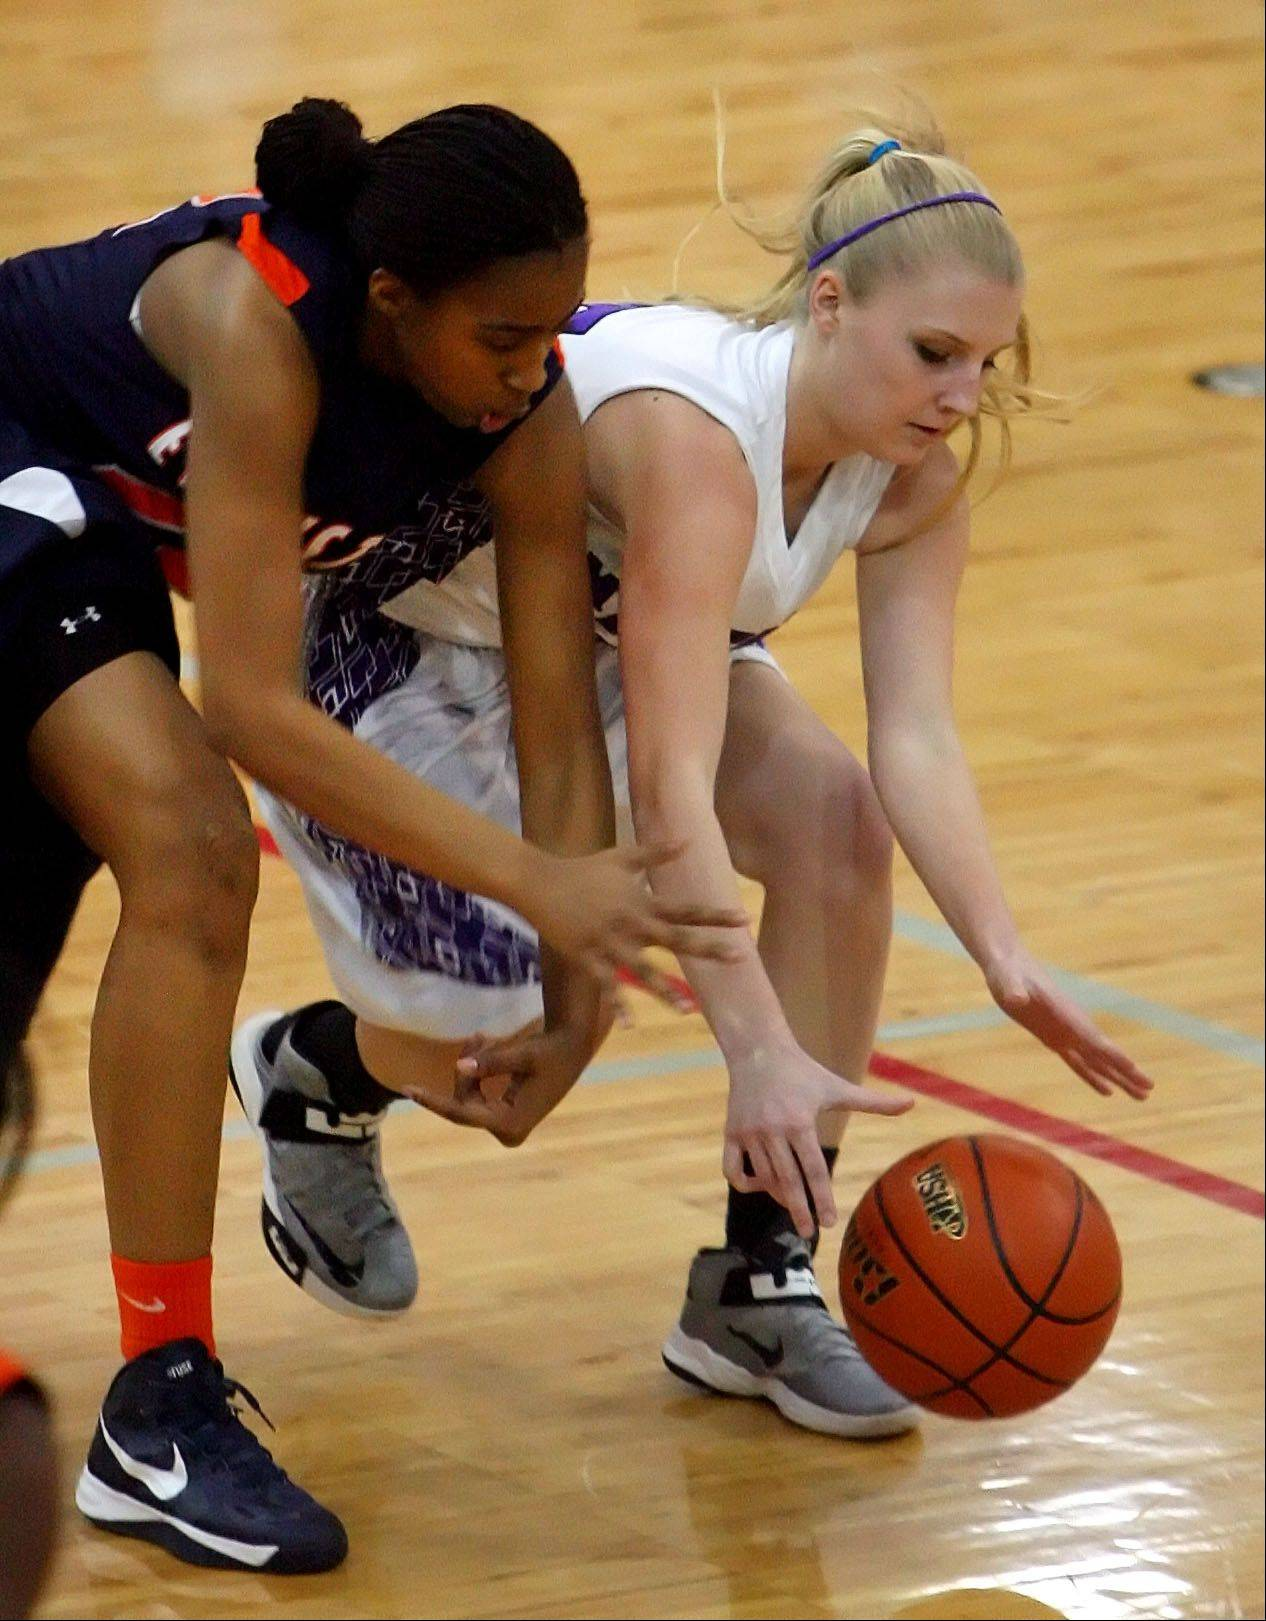 Steve Lundy/slundy@dailyherald.comRolling Meadows' Allie Kemph, right and Evanston's Dashae Shumate battle for a loose ball in Class 4A Niles West supersectional action Monday night in Skokie.